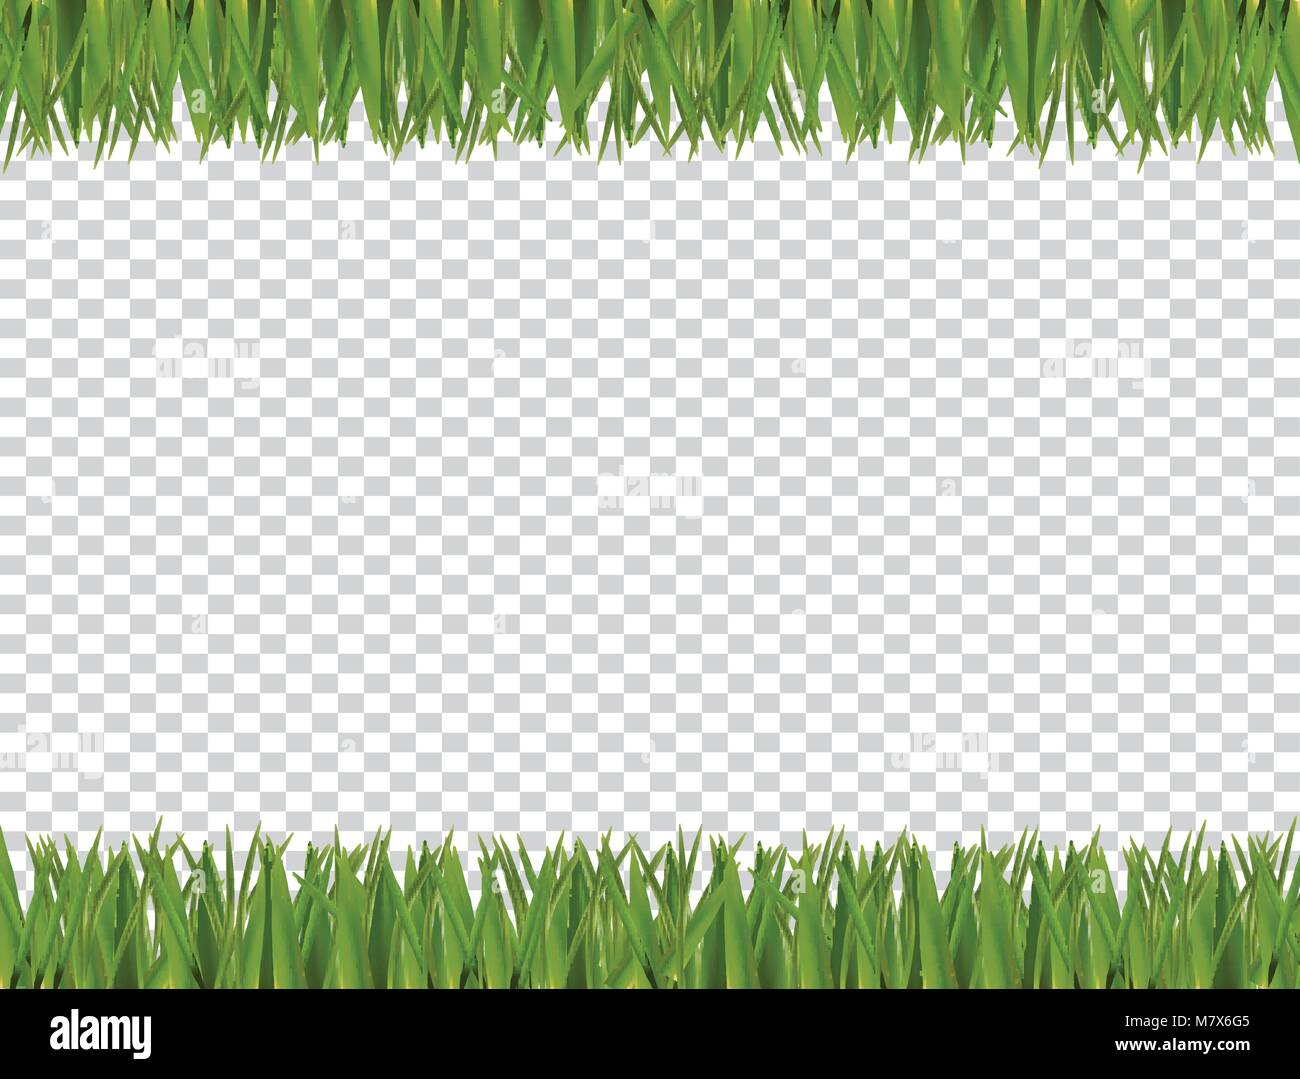 grass border no background realistic green realistic horizontal grass border frame isolated on transparent background with empty copy space for text spring or summer vector illustration stock